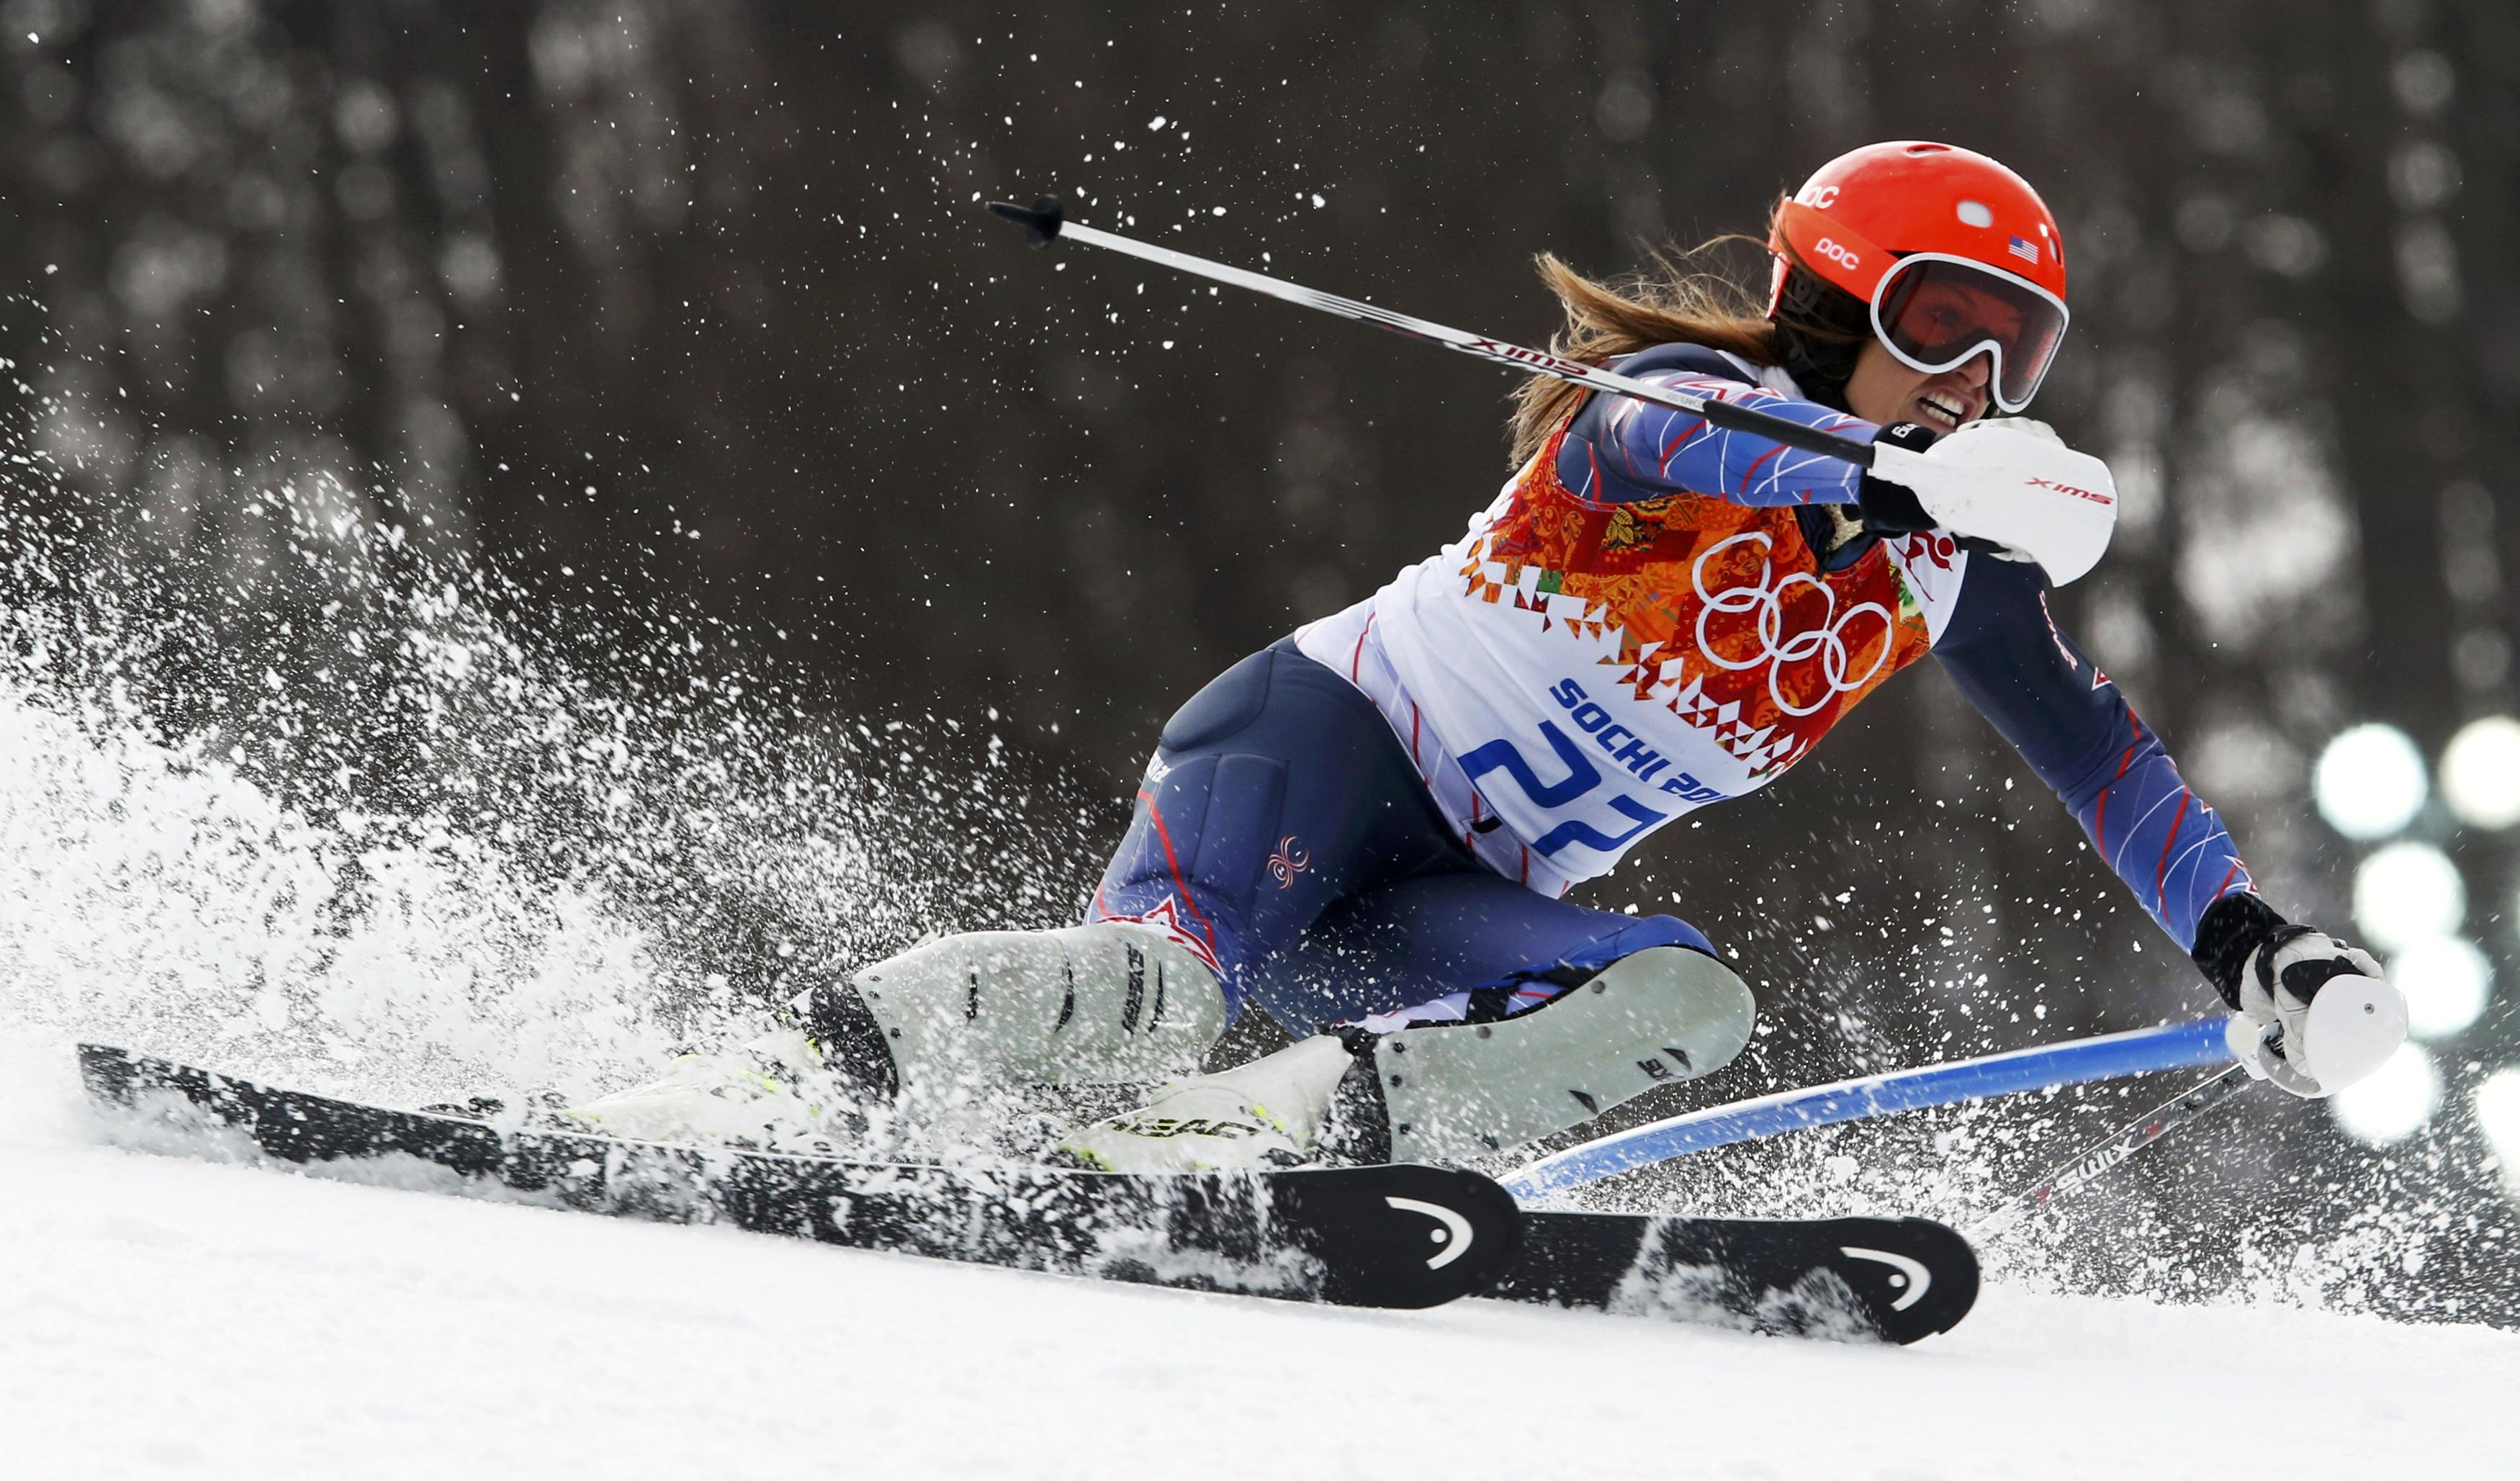 Mancuso of the U.S. competes in the slalom run of the women's alpine skiing super combined event at the 2014 Sochi Winter Olympics